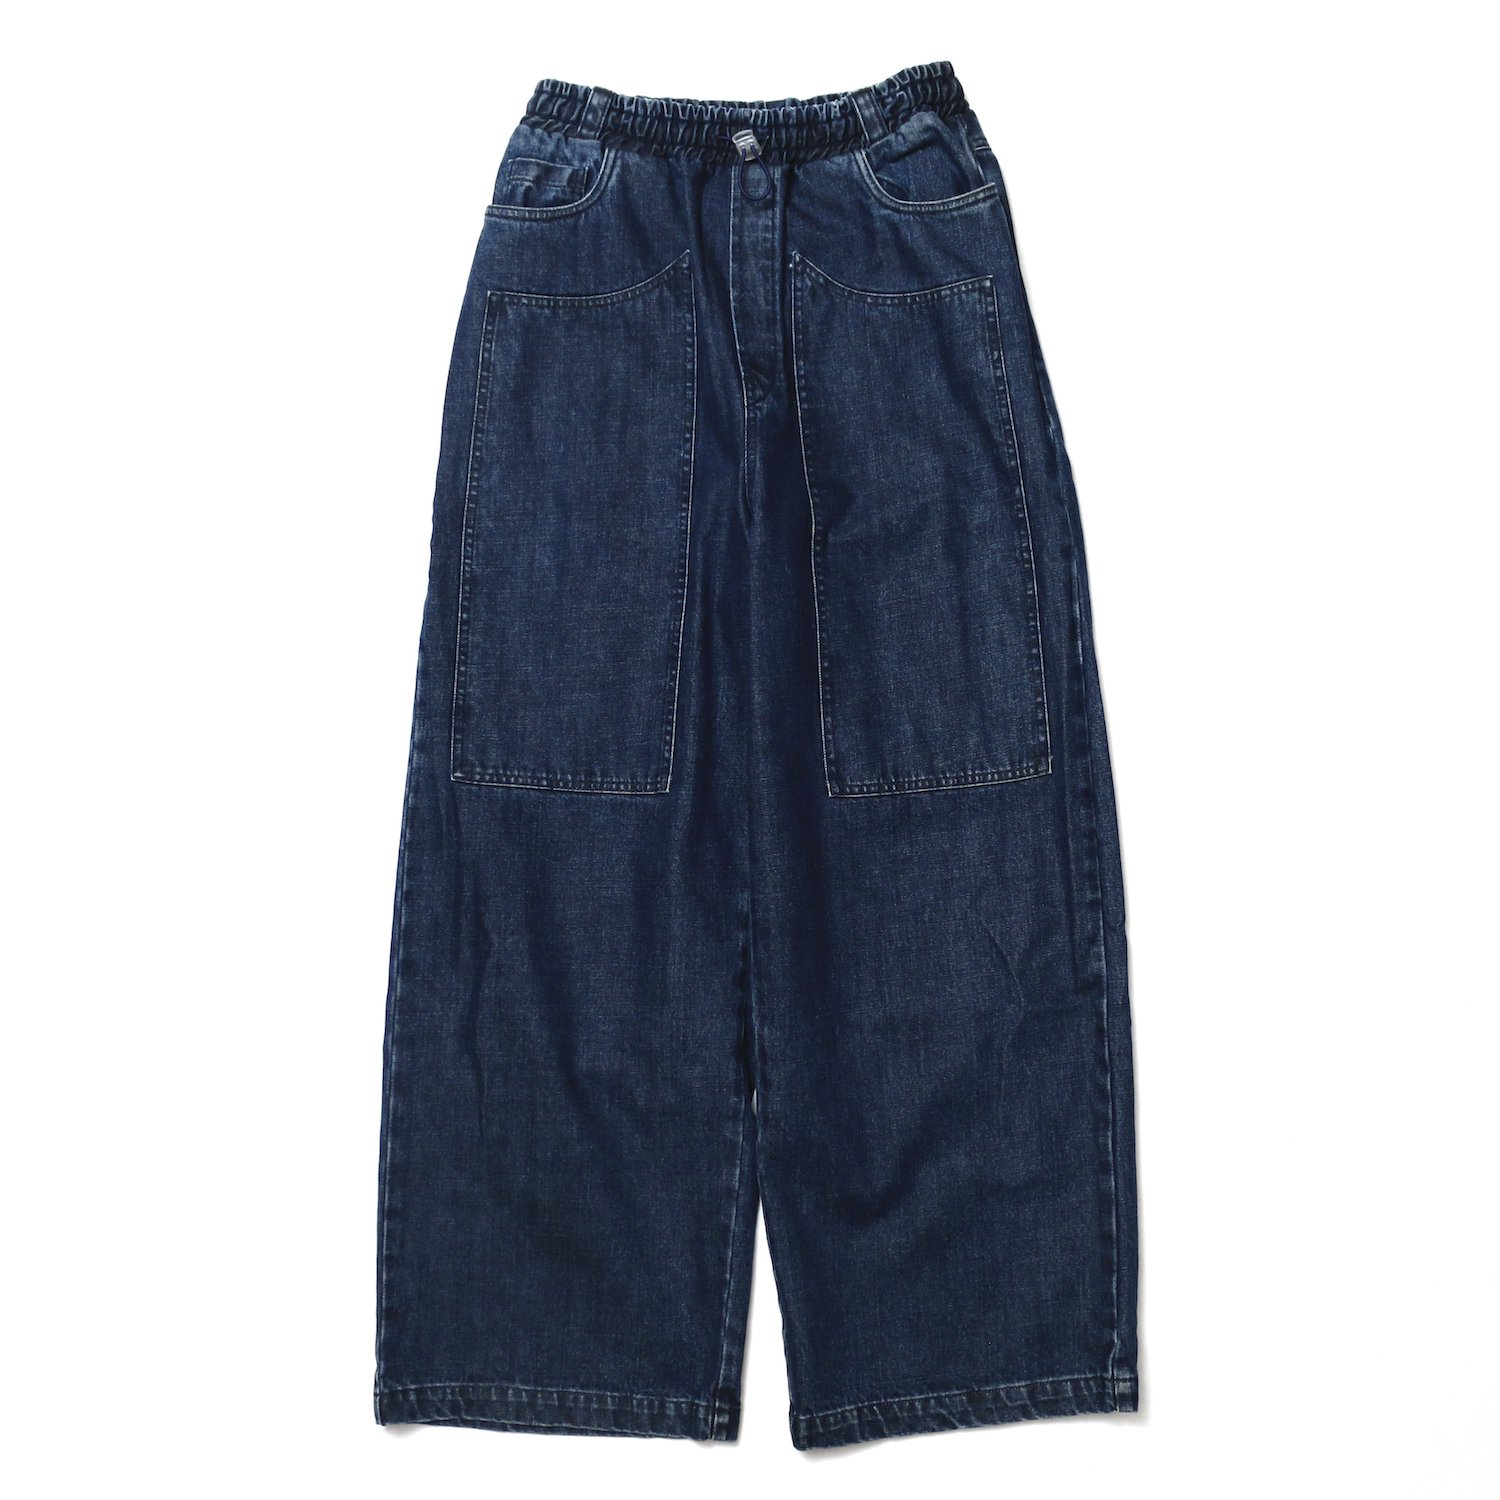 <img class='new_mark_img1' src='//img.shop-pro.jp/img/new/icons8.gif' style='border:none;display:inline;margin:0px;padding:0px;width:auto;' />SUNNEI<br />FIT LOOSE ELASTIC PANTS W PATC